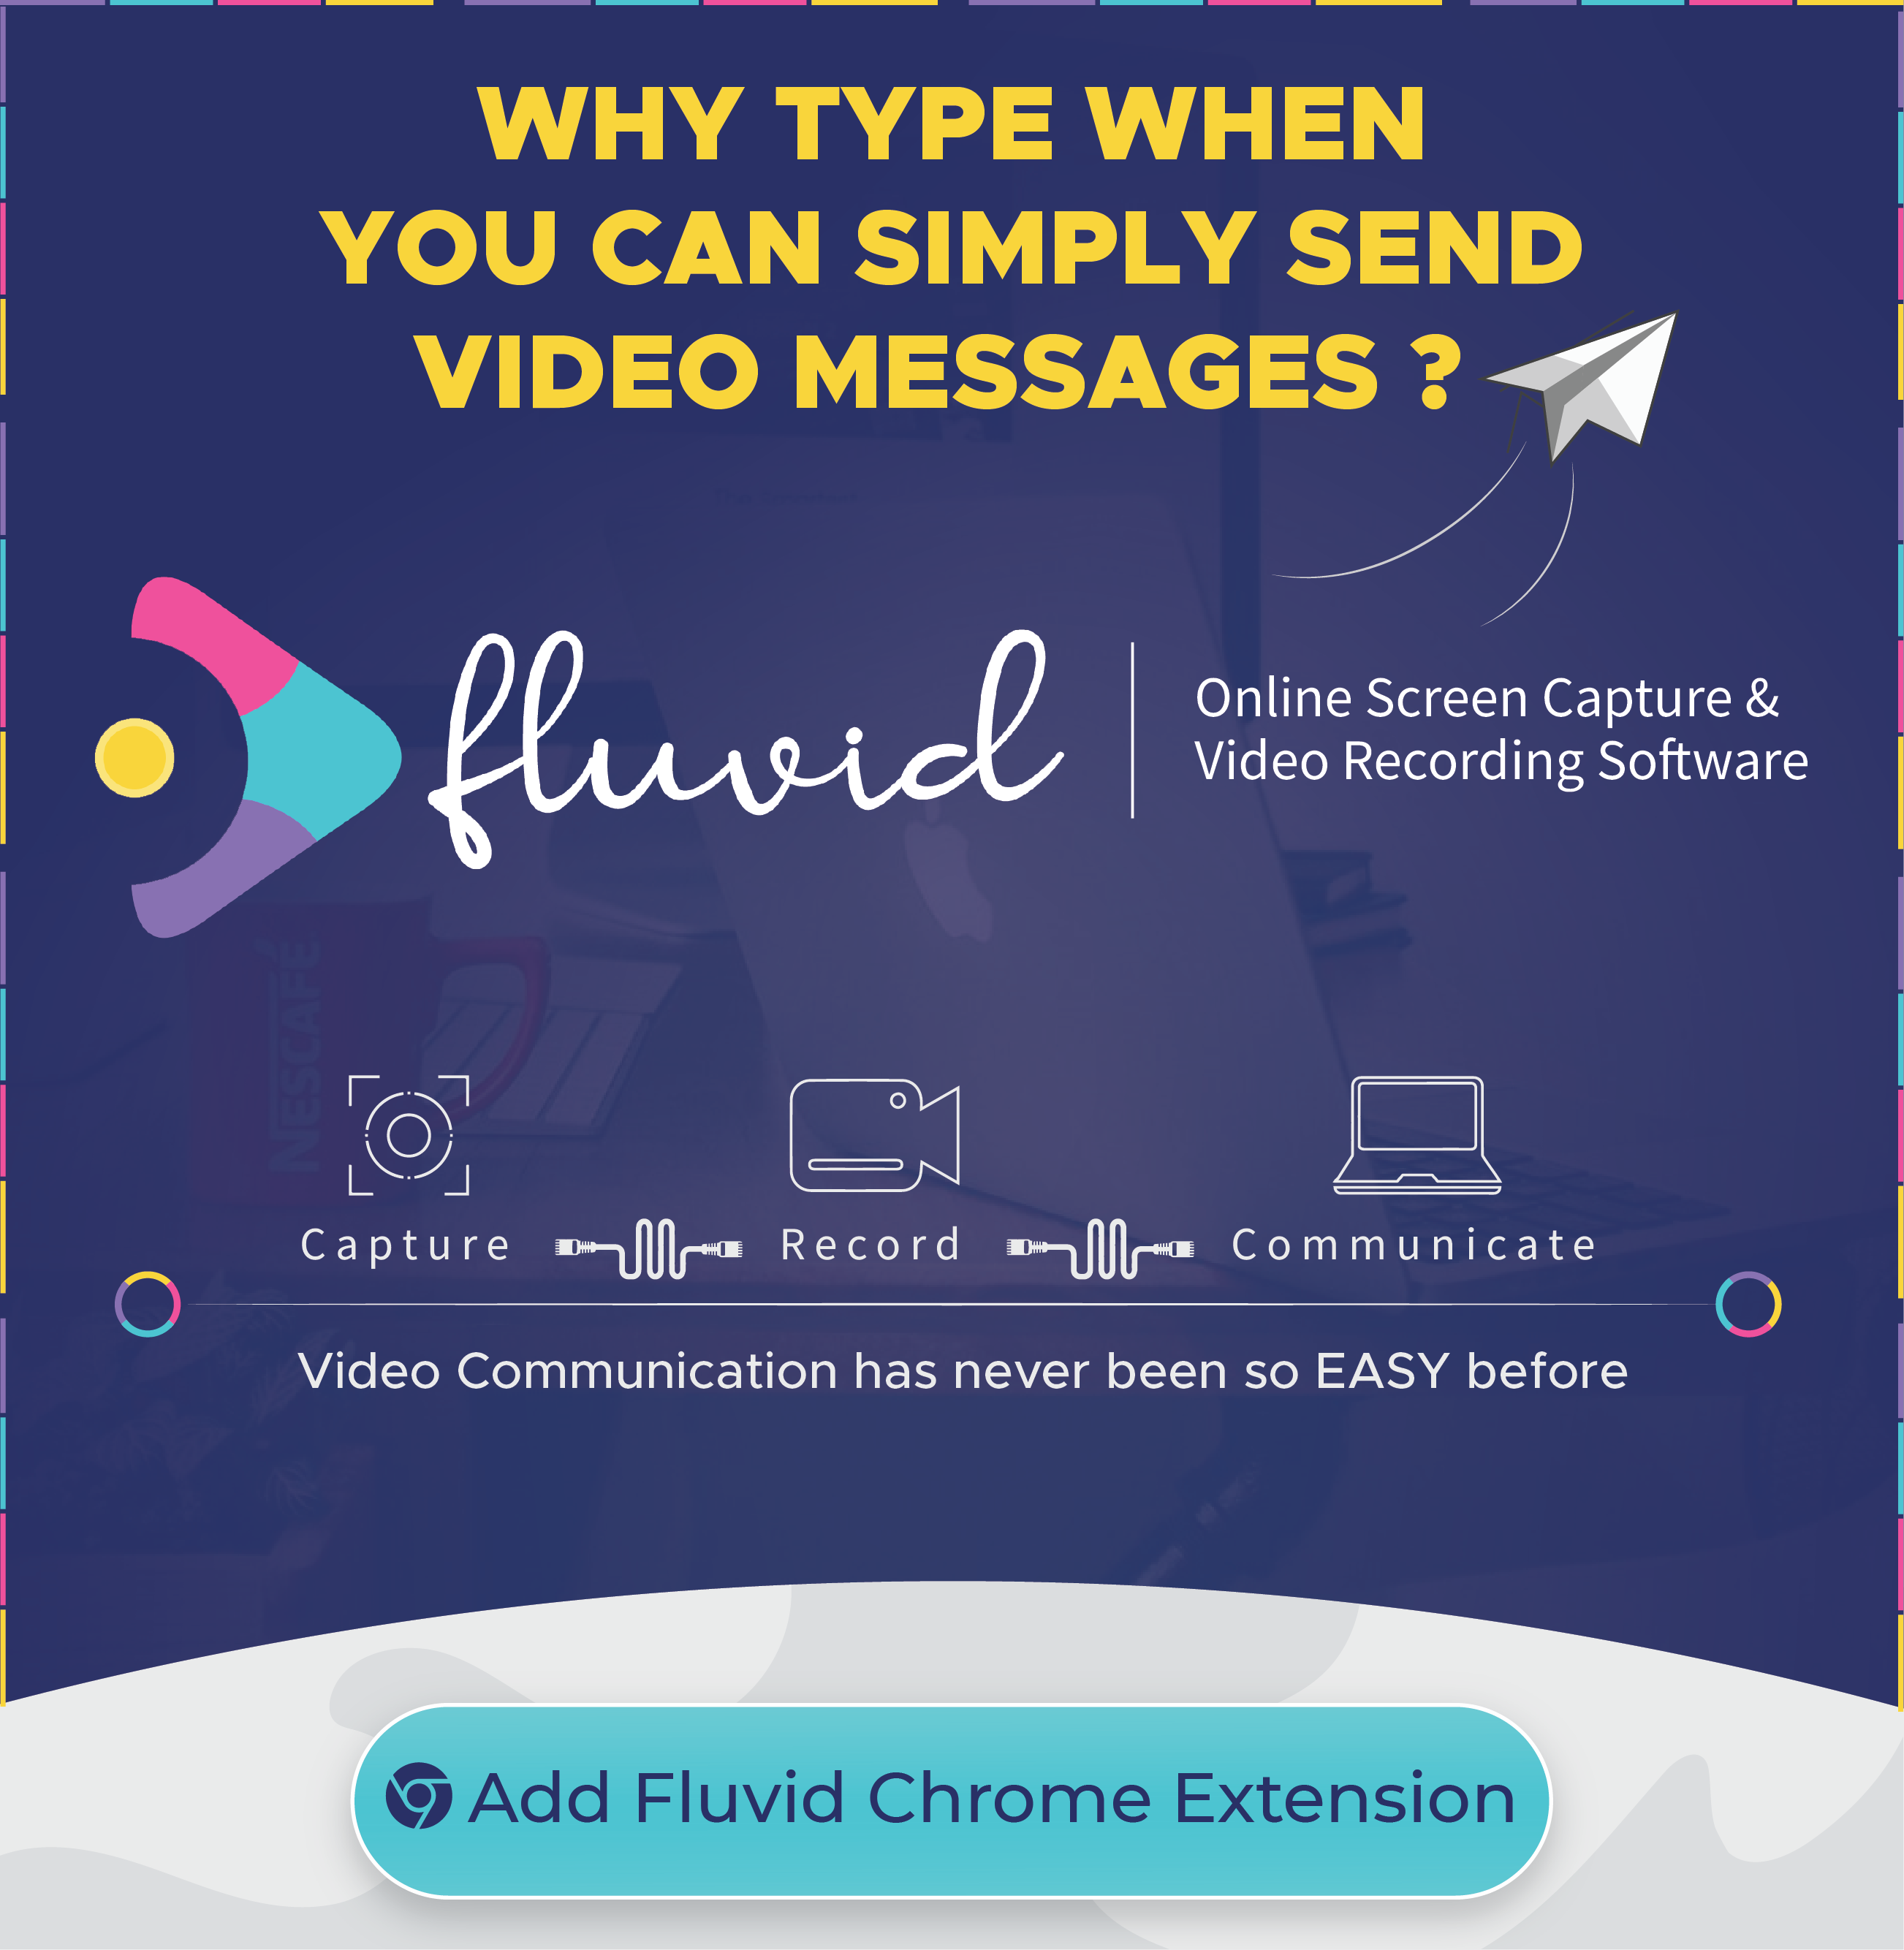 Fluvid - Online Screen Capture & VIdeo Recording Software